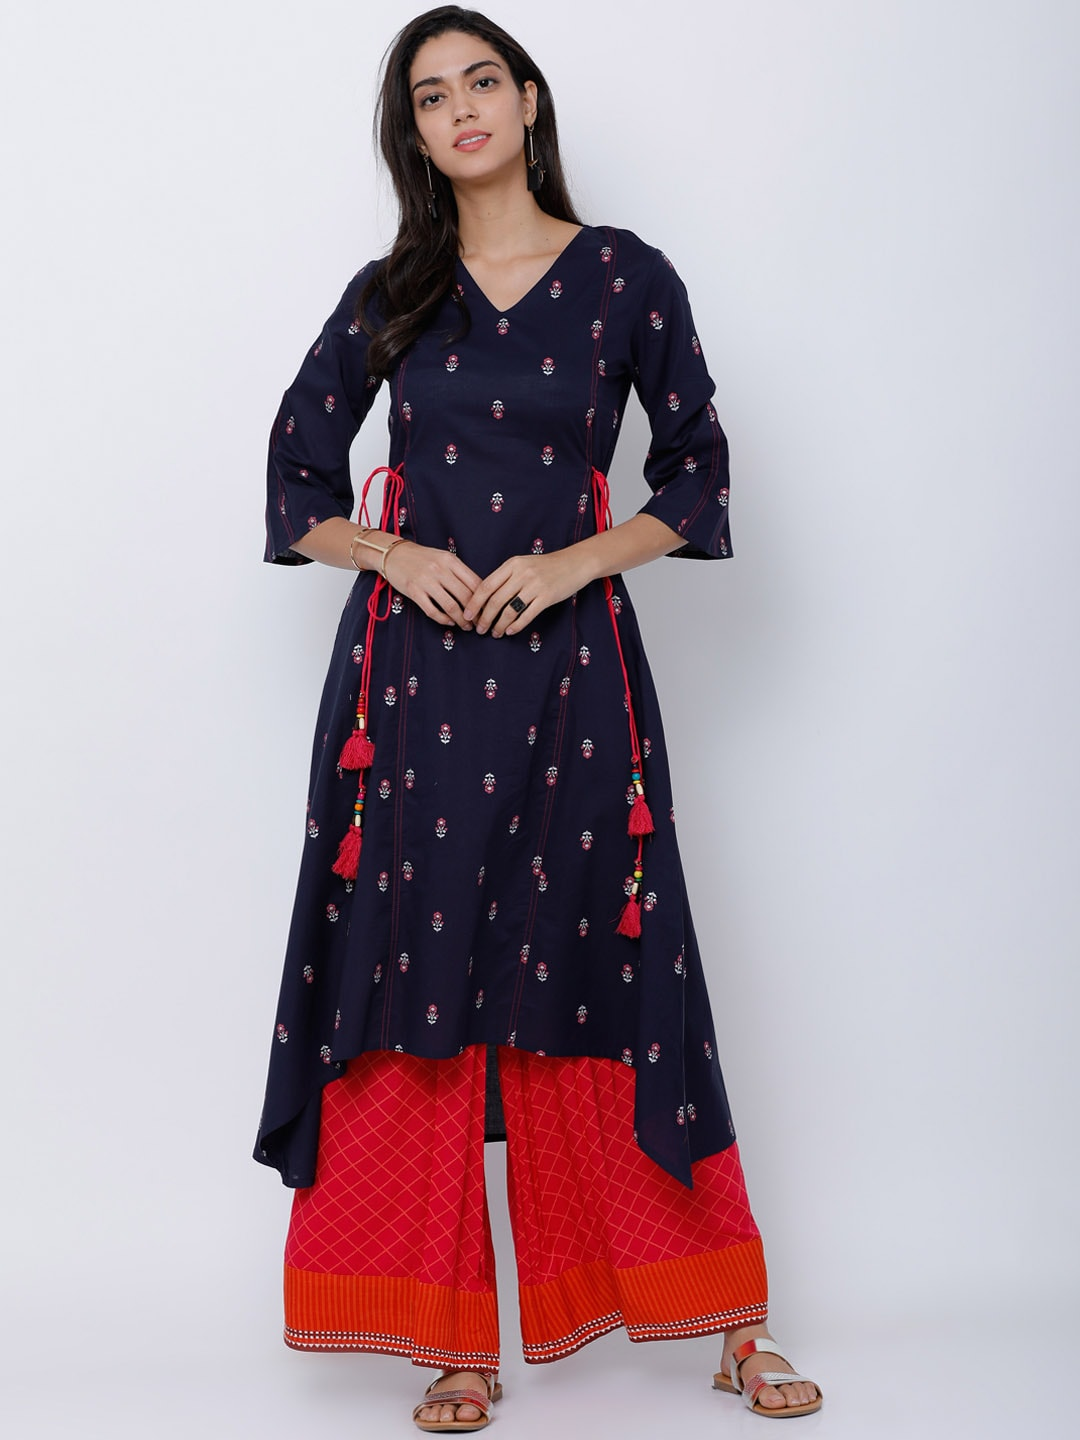 9a6fd633488 Vishudh Navy Blue Blue Kurtas - Buy Vishudh Navy Blue Blue Kurtas online in  India